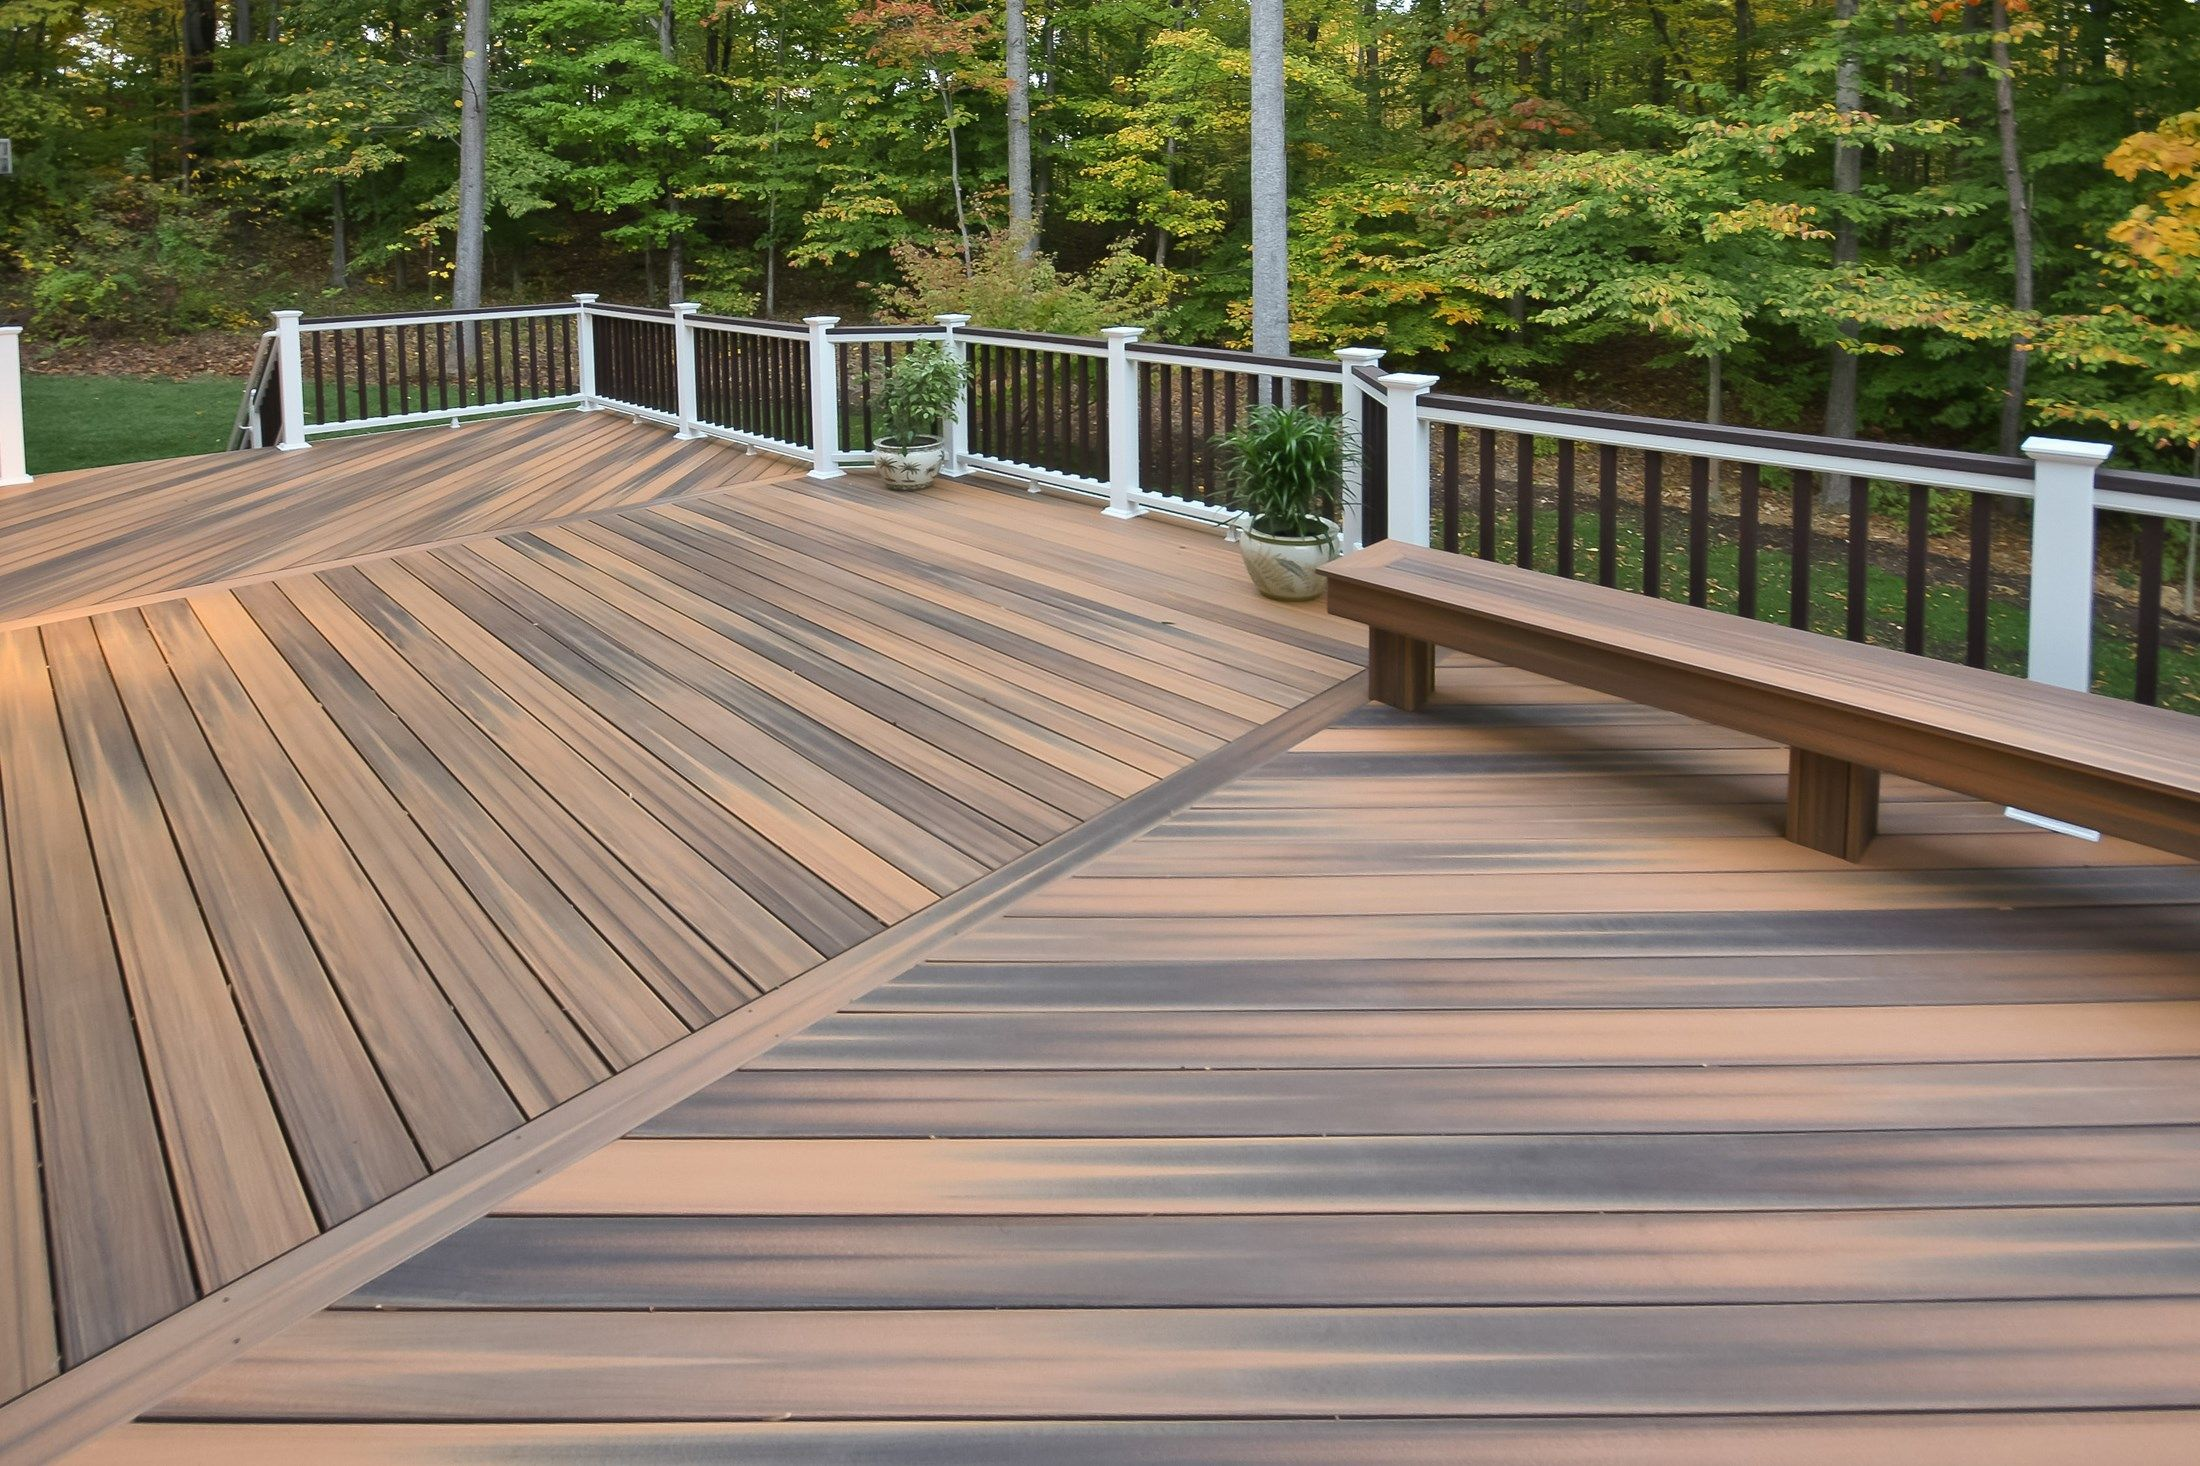 Many Times The Deck Is Wider Then The Longest Decking Board Available So Random Joints Should Be Placed And Staggere Backyard Traditional Porch Decks Backyard